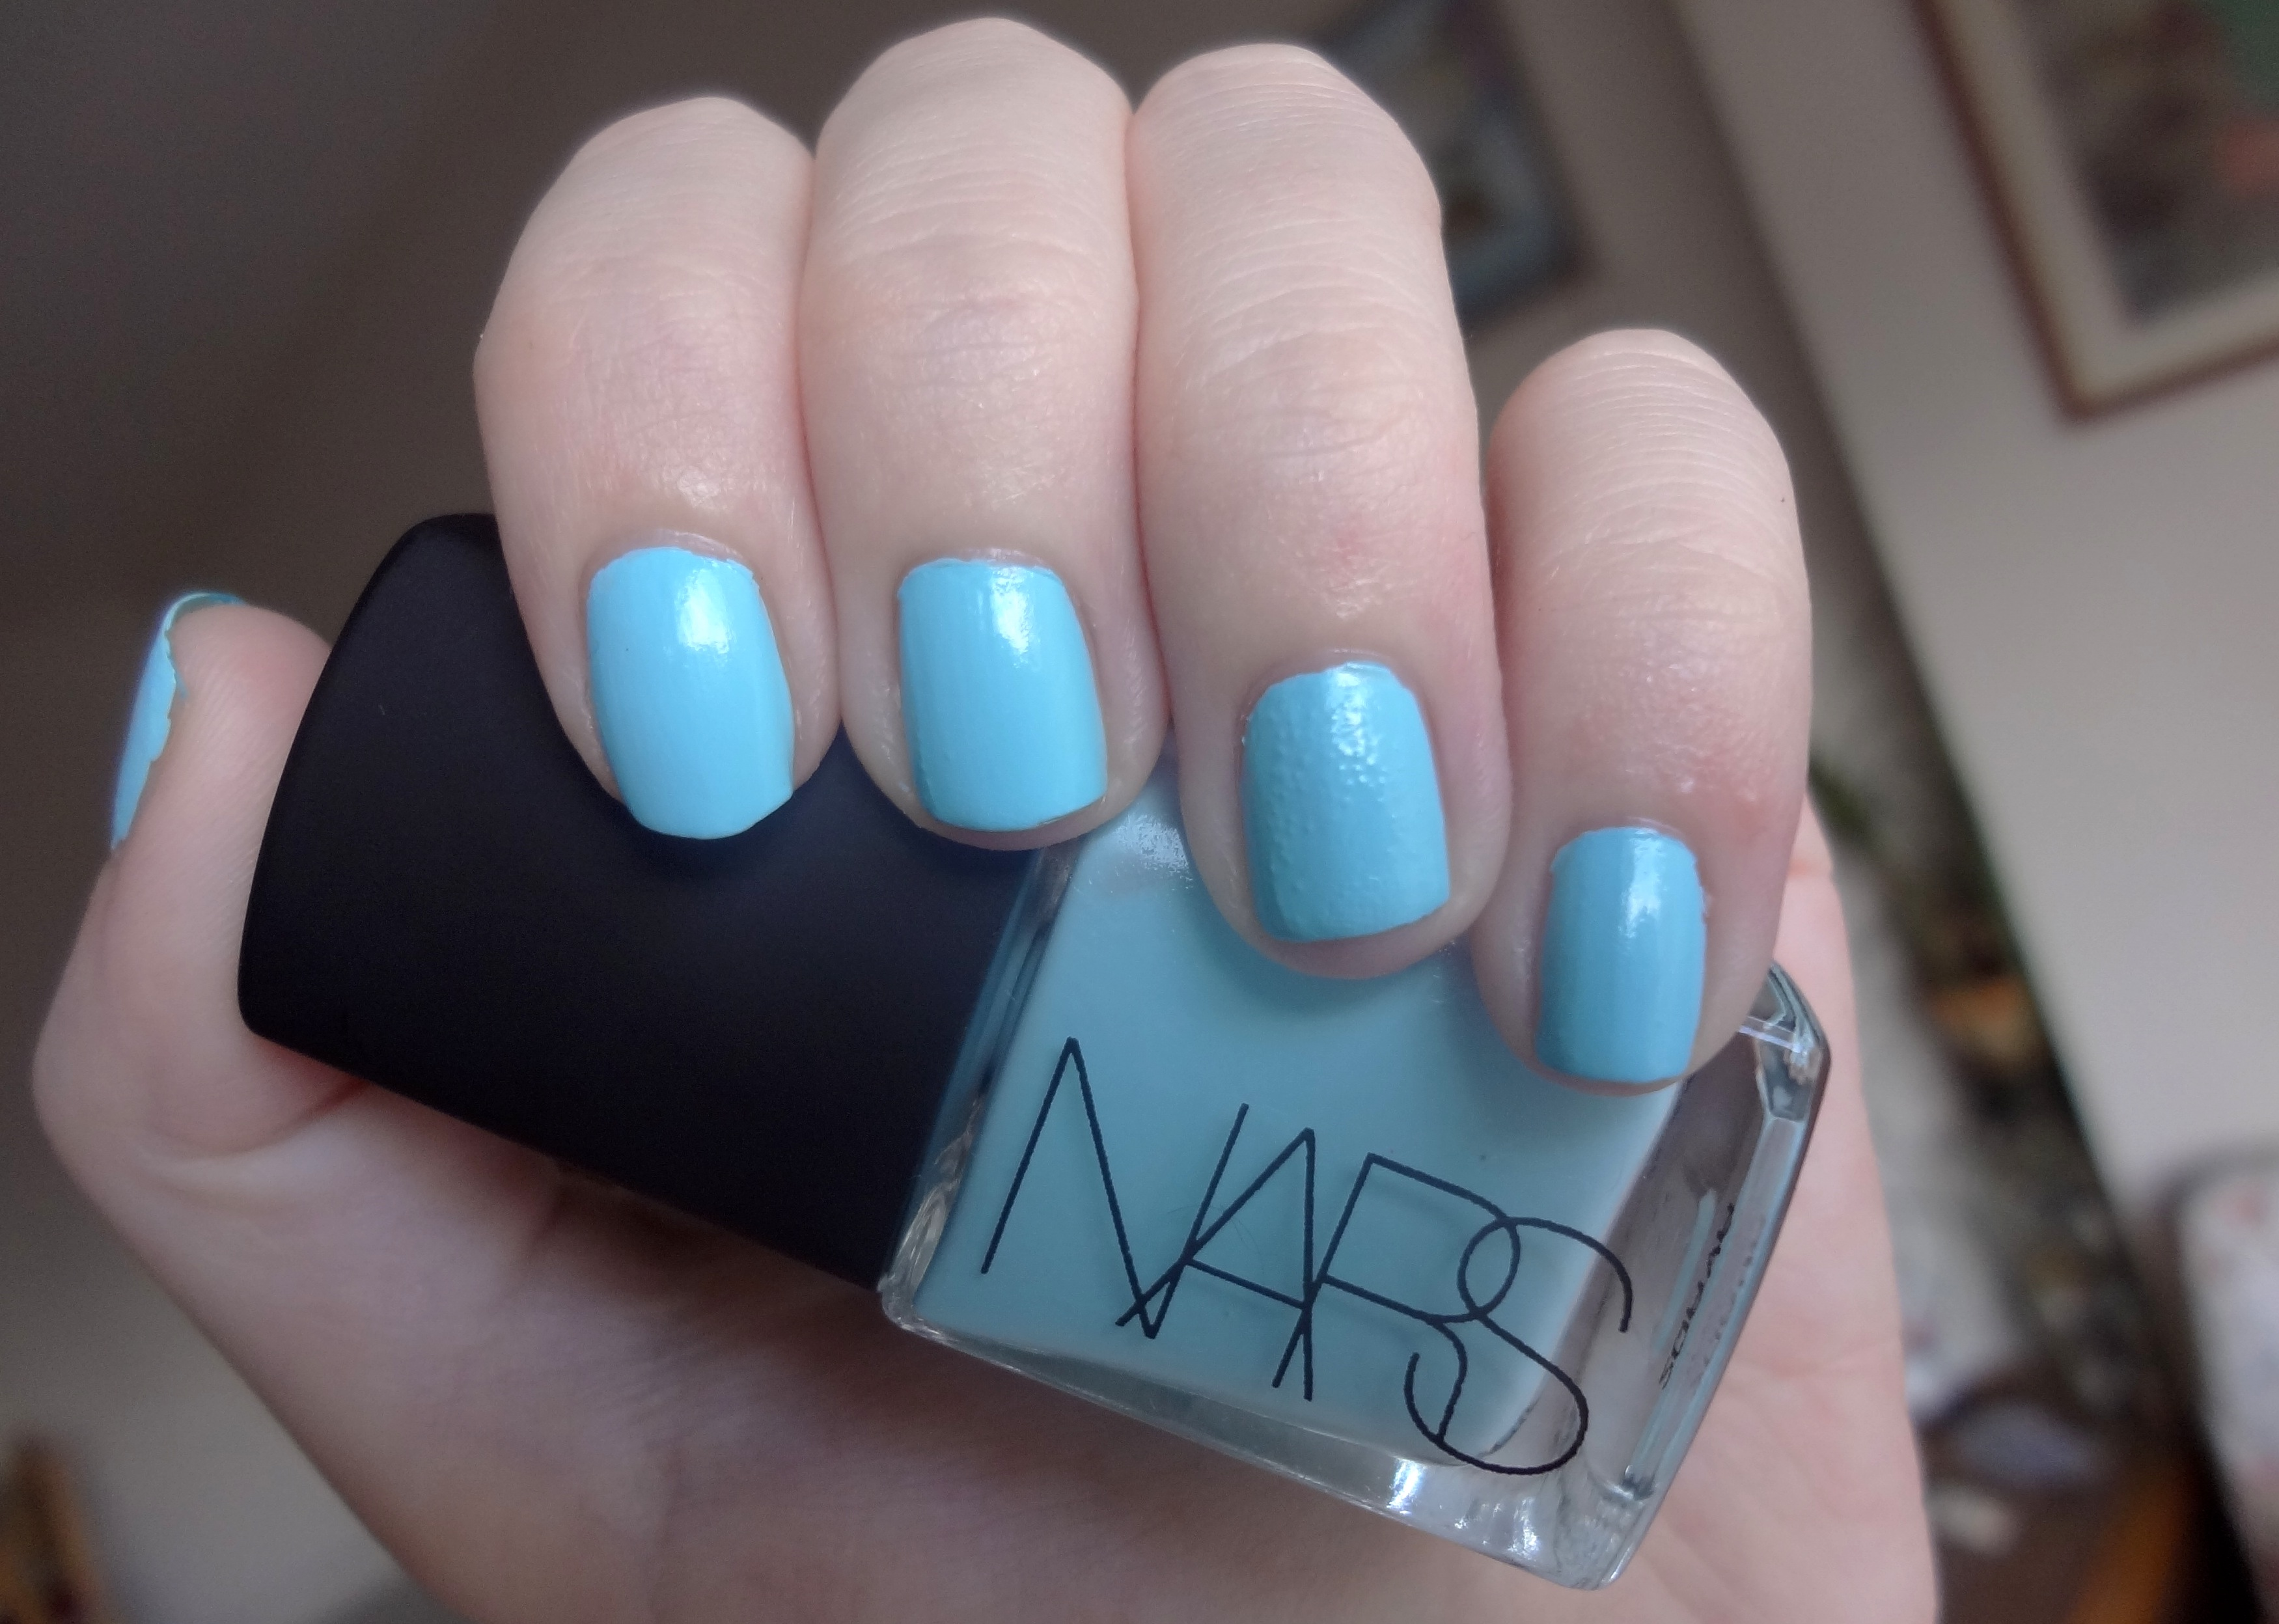 NARS Kutki nail polish review | Through The Looking Glass